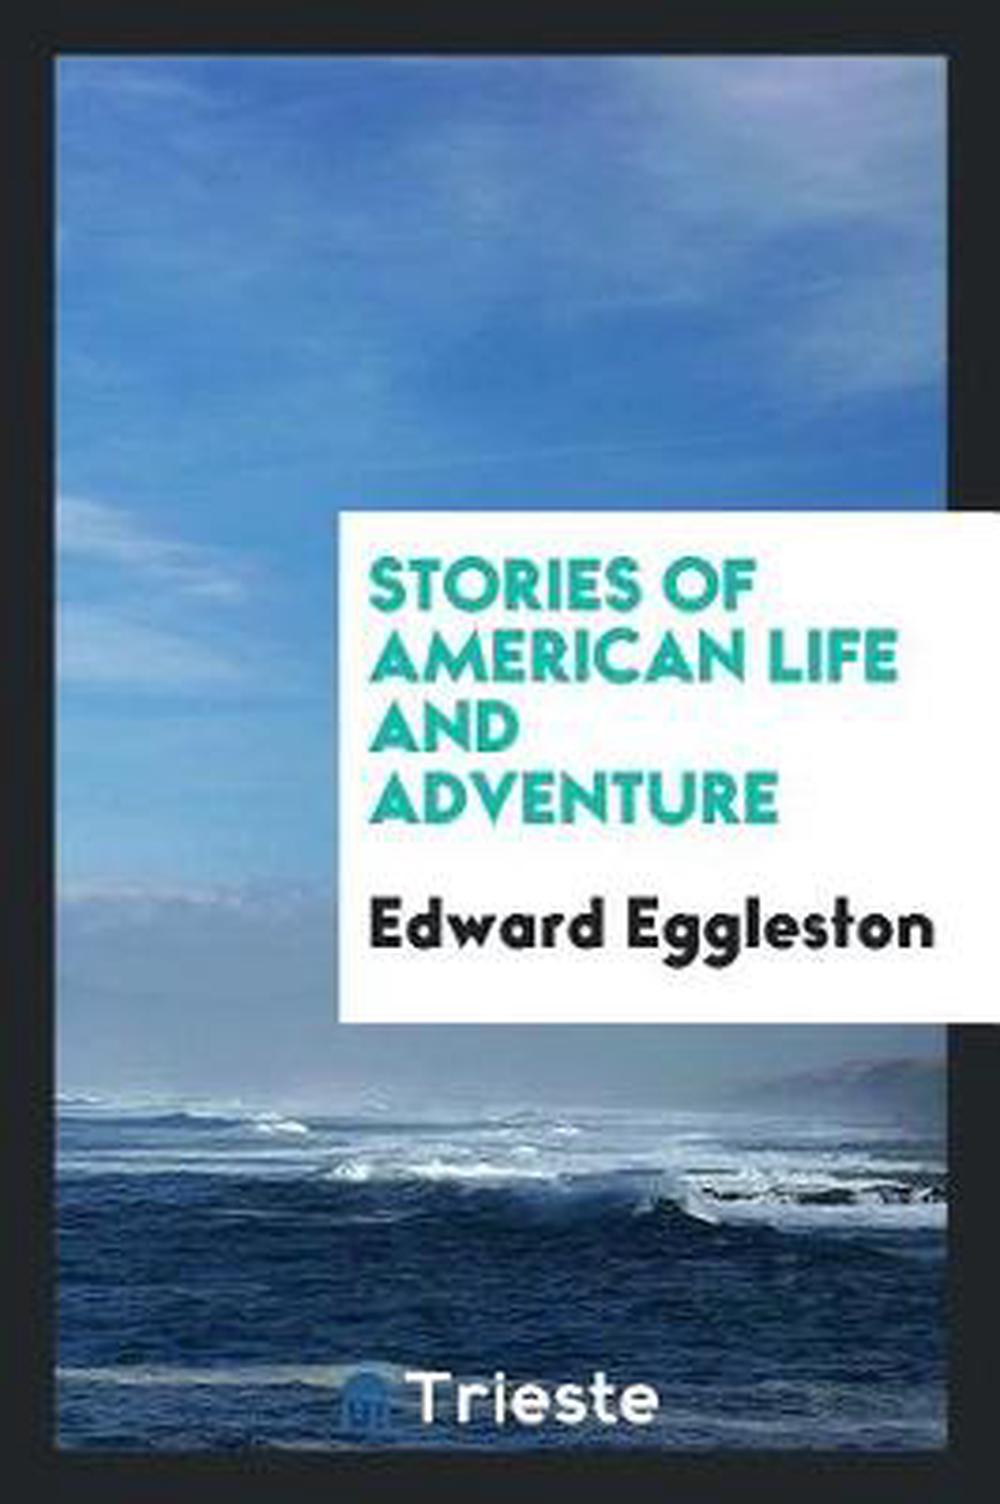 Stories of American life and adventure by Edward Eggleston (English) Paperback B